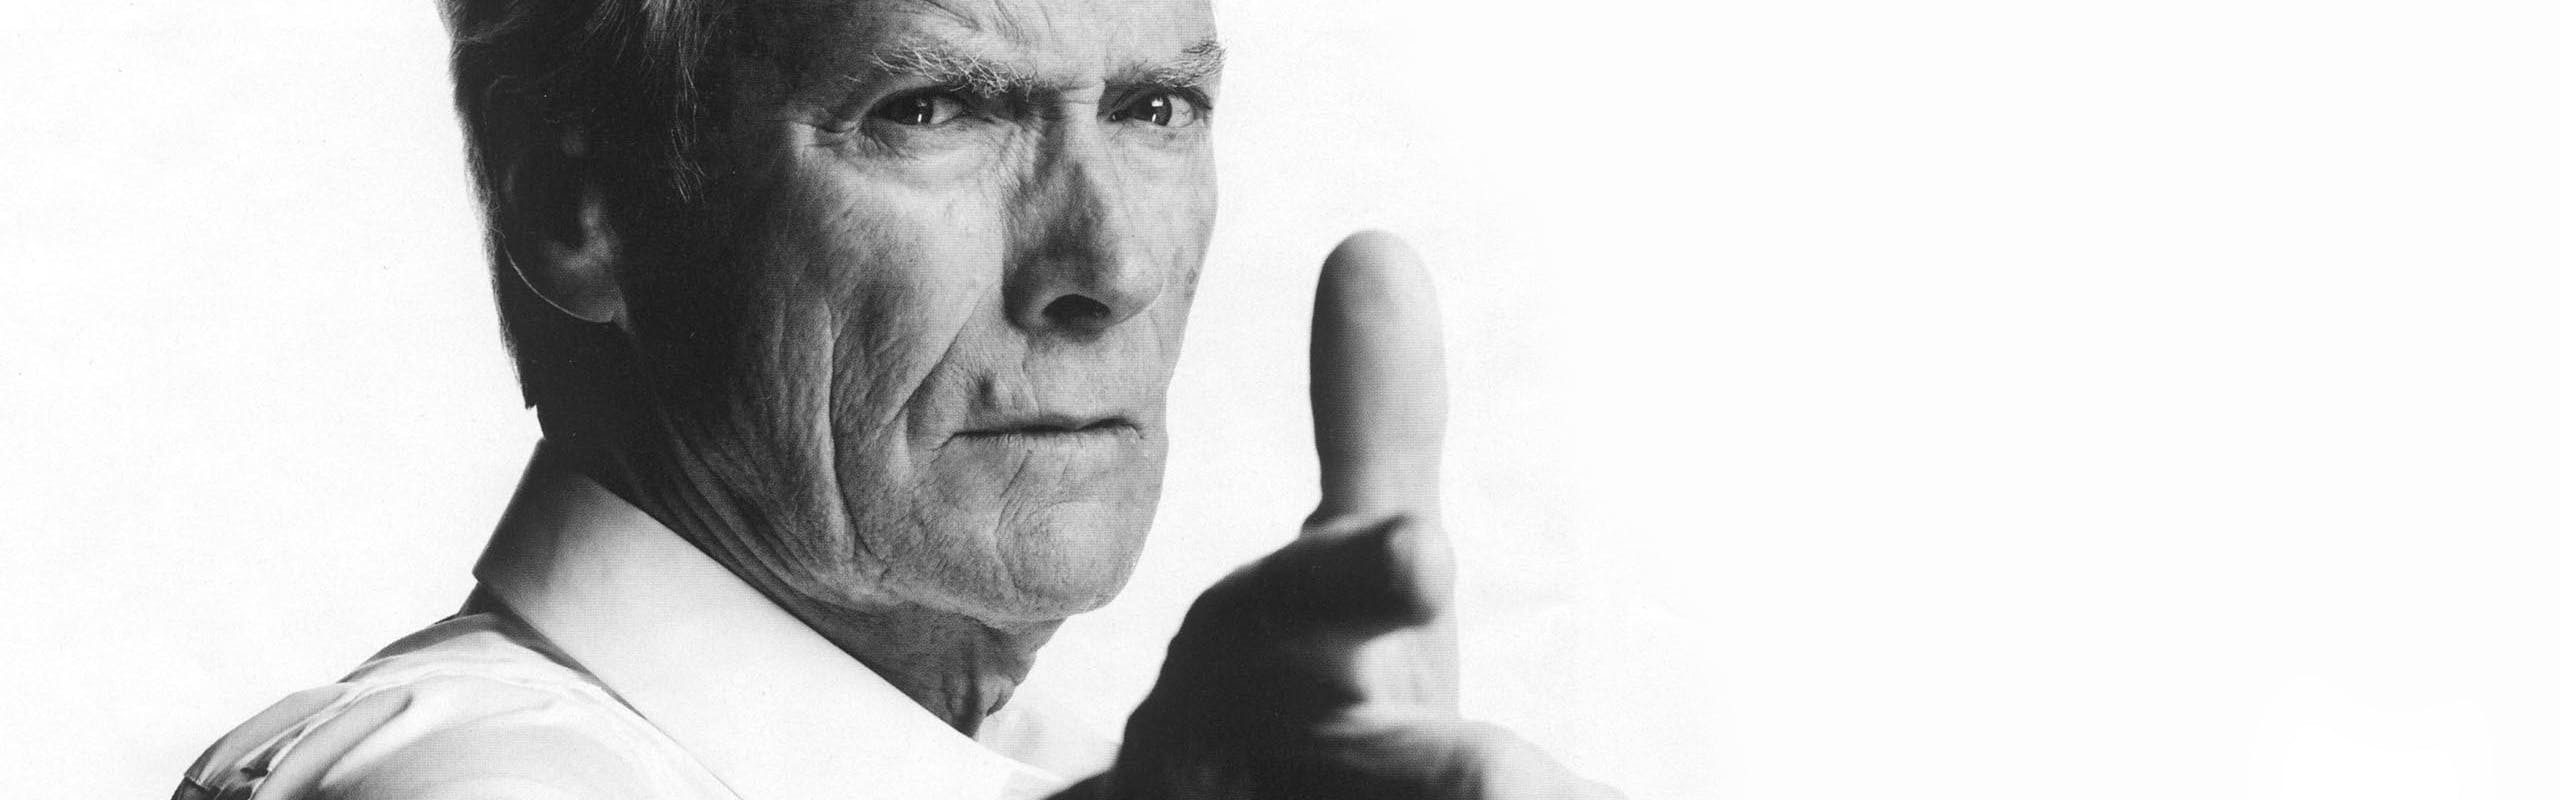 Ritratto di Clint Eastwood